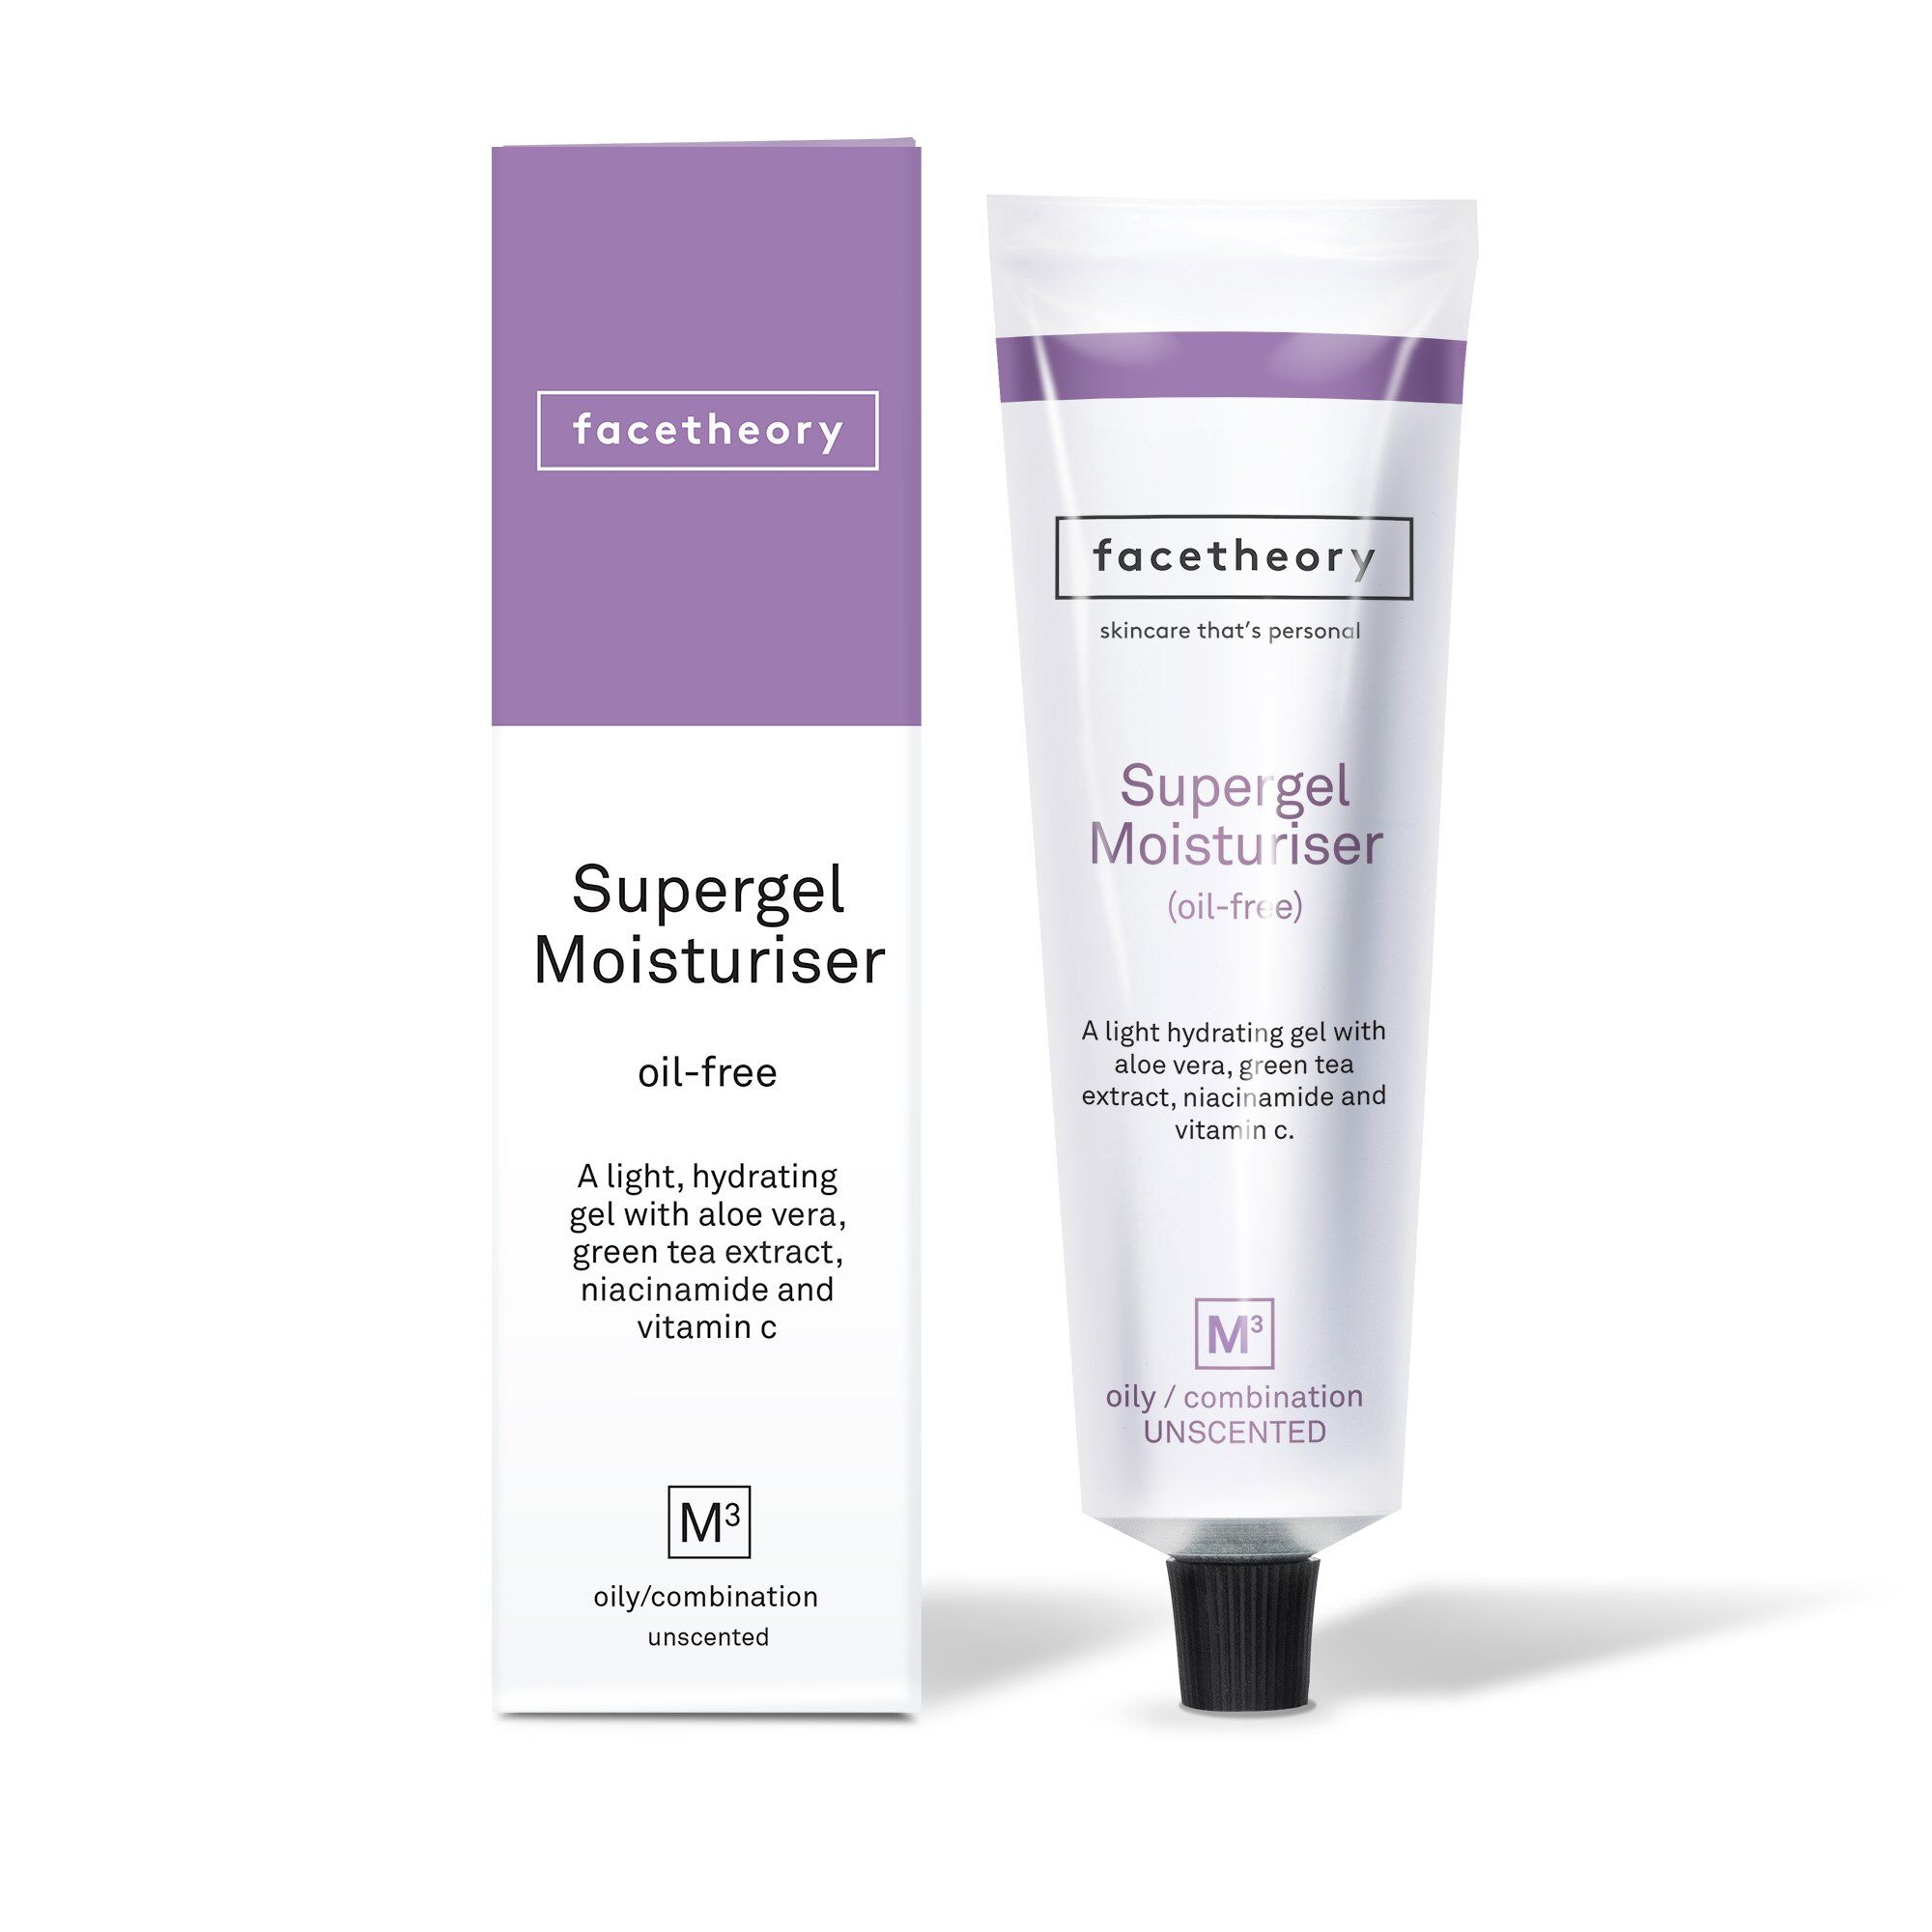 facetheory.com - SUPERGEL OIL-FREE MOISTURISER M3 FOR OILY AND ACNE-PRONE SKIN